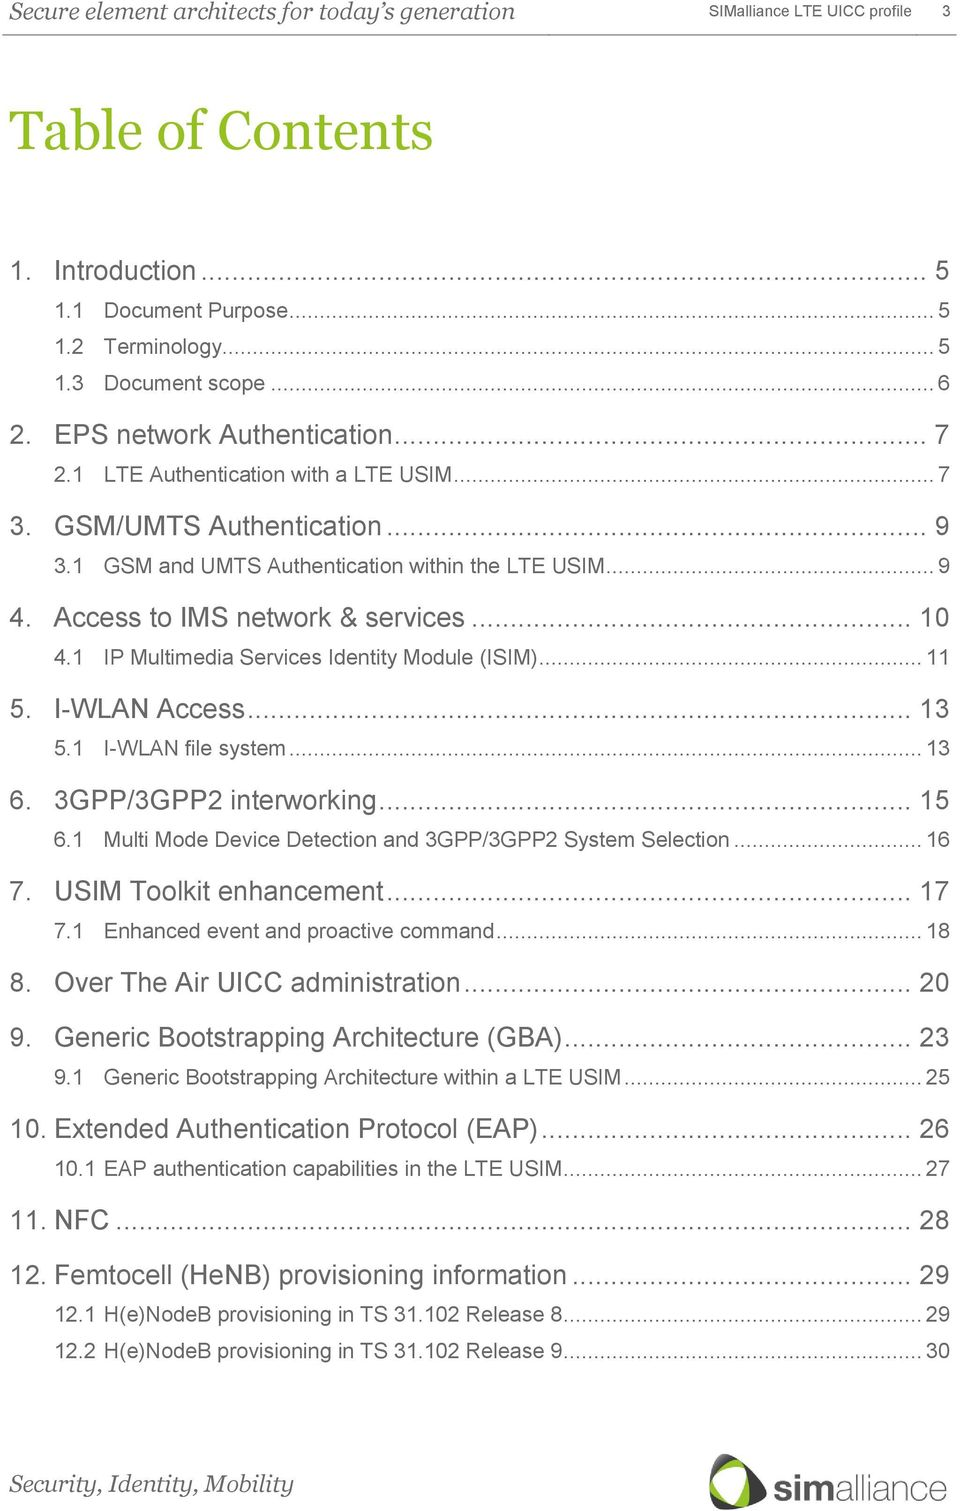 SIMalliance LTE UICC profile  This document is a collection